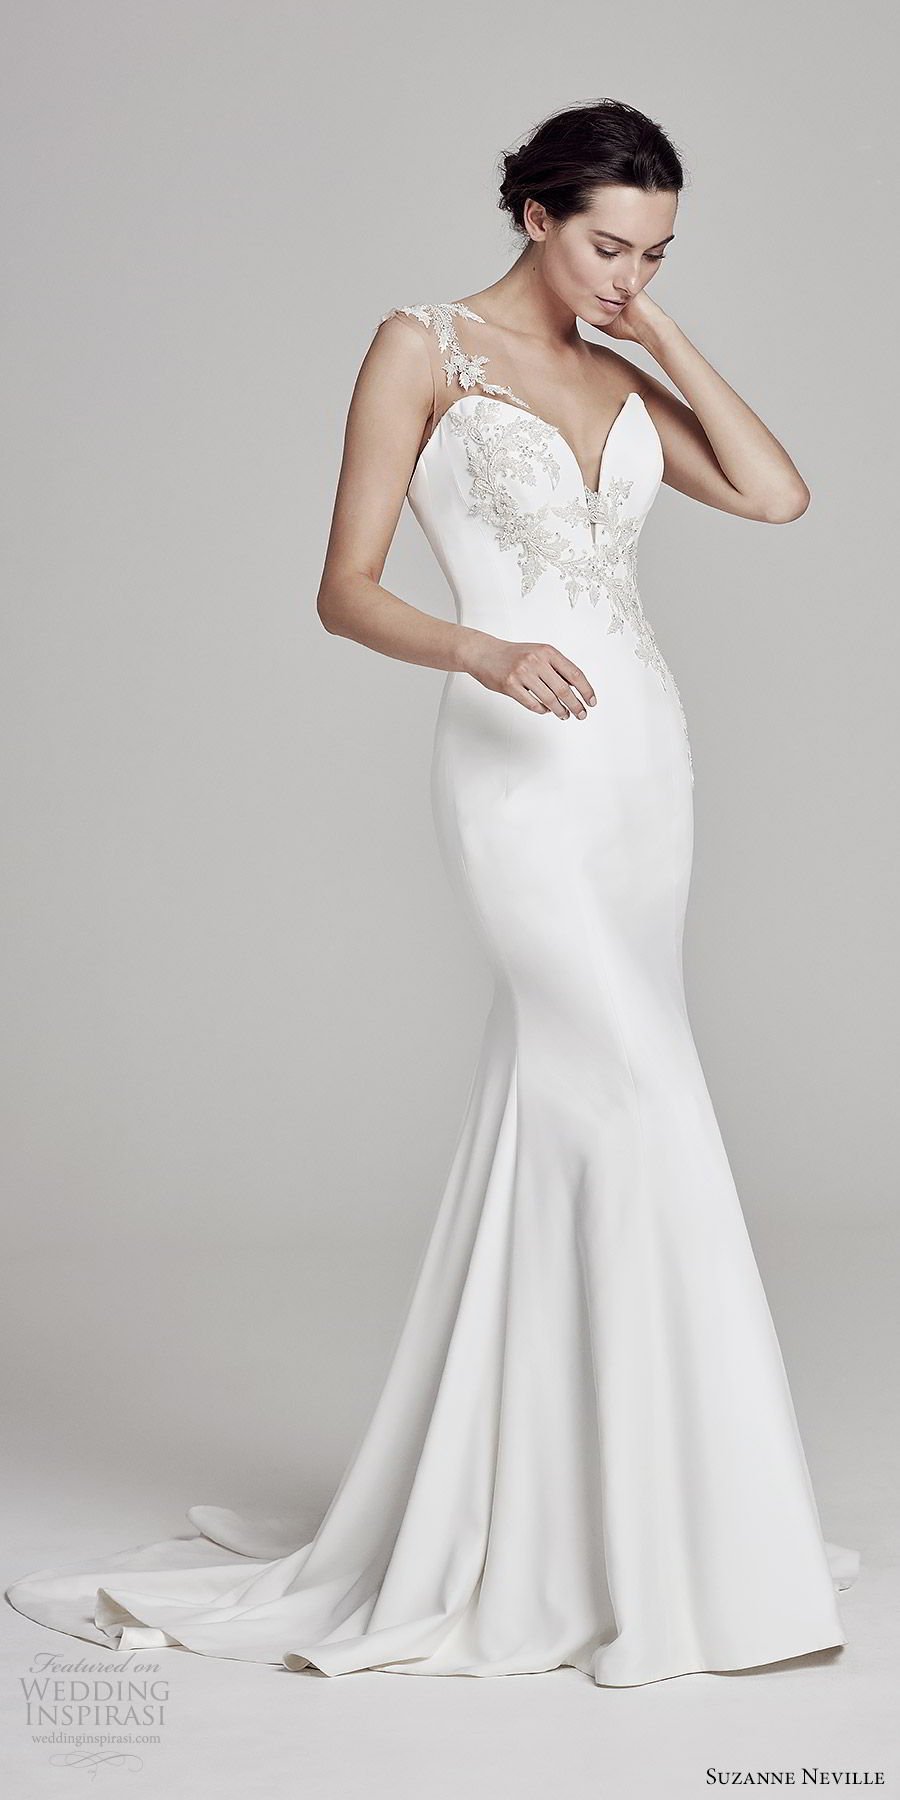 suzanne neville bridal 2019 sleeveless illusion thick straps sweetheart neckline sheath wedding dress (ophelia) elegant sophisticated mv